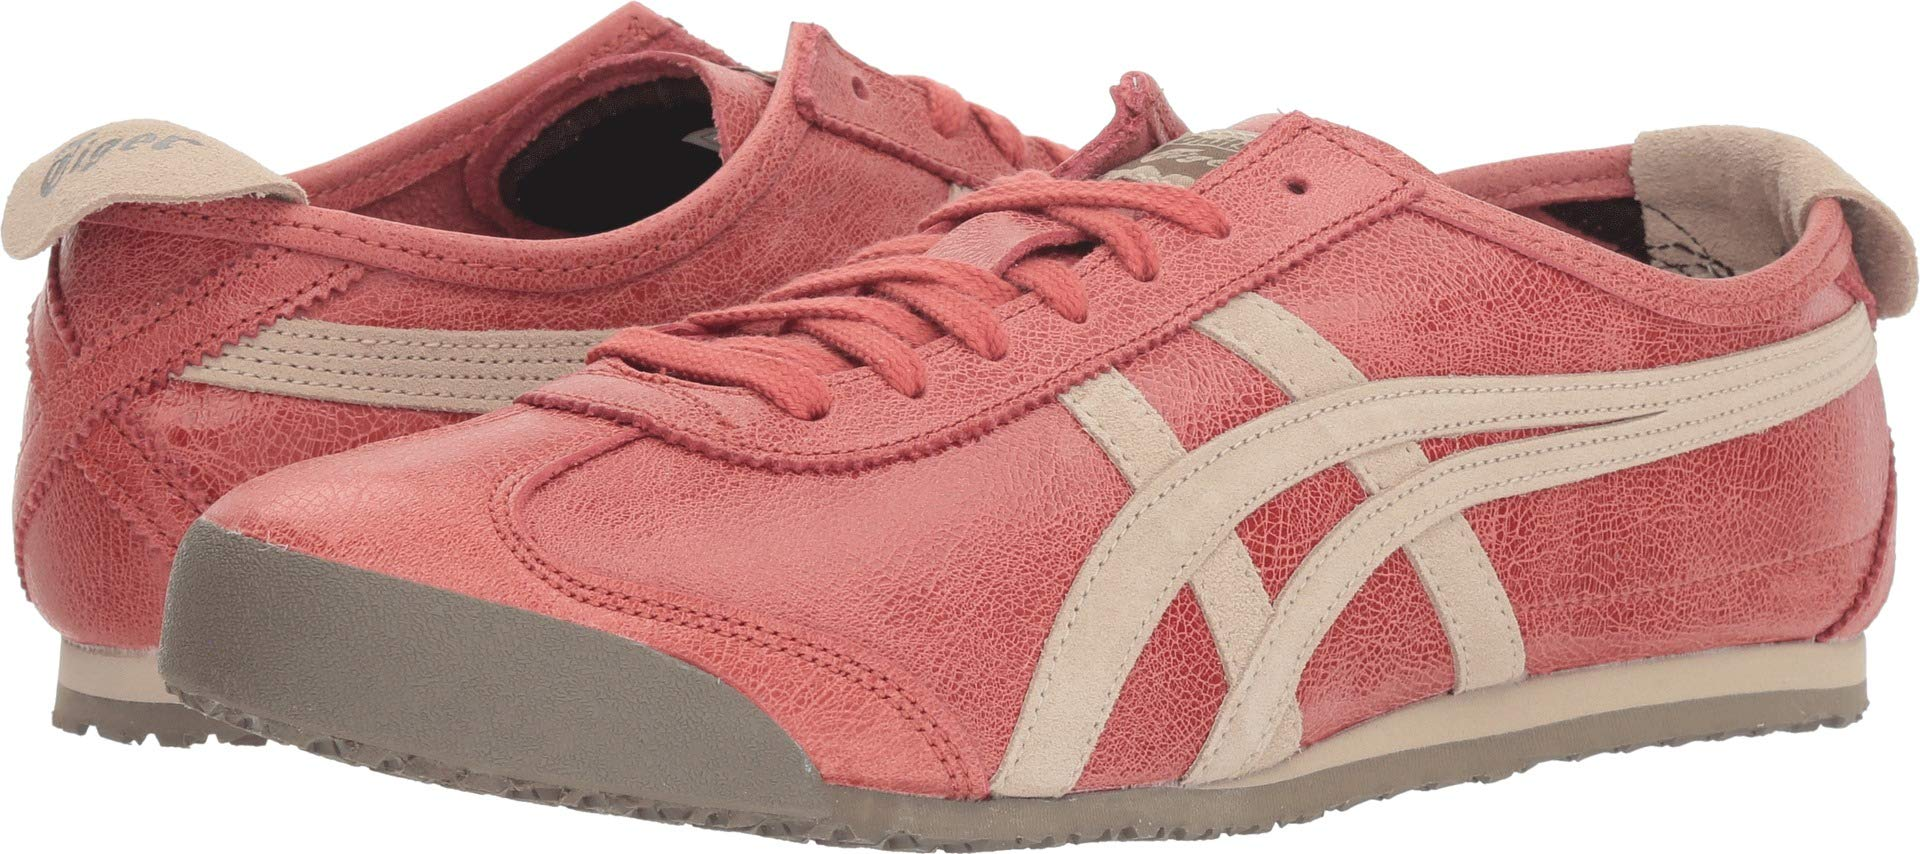 buy online 88d00 a8e90 Onitsuka Tiger Unisex Mexico 66¿ Red Brick/Feather Grey 12 Women / 10.5 Men  M US -